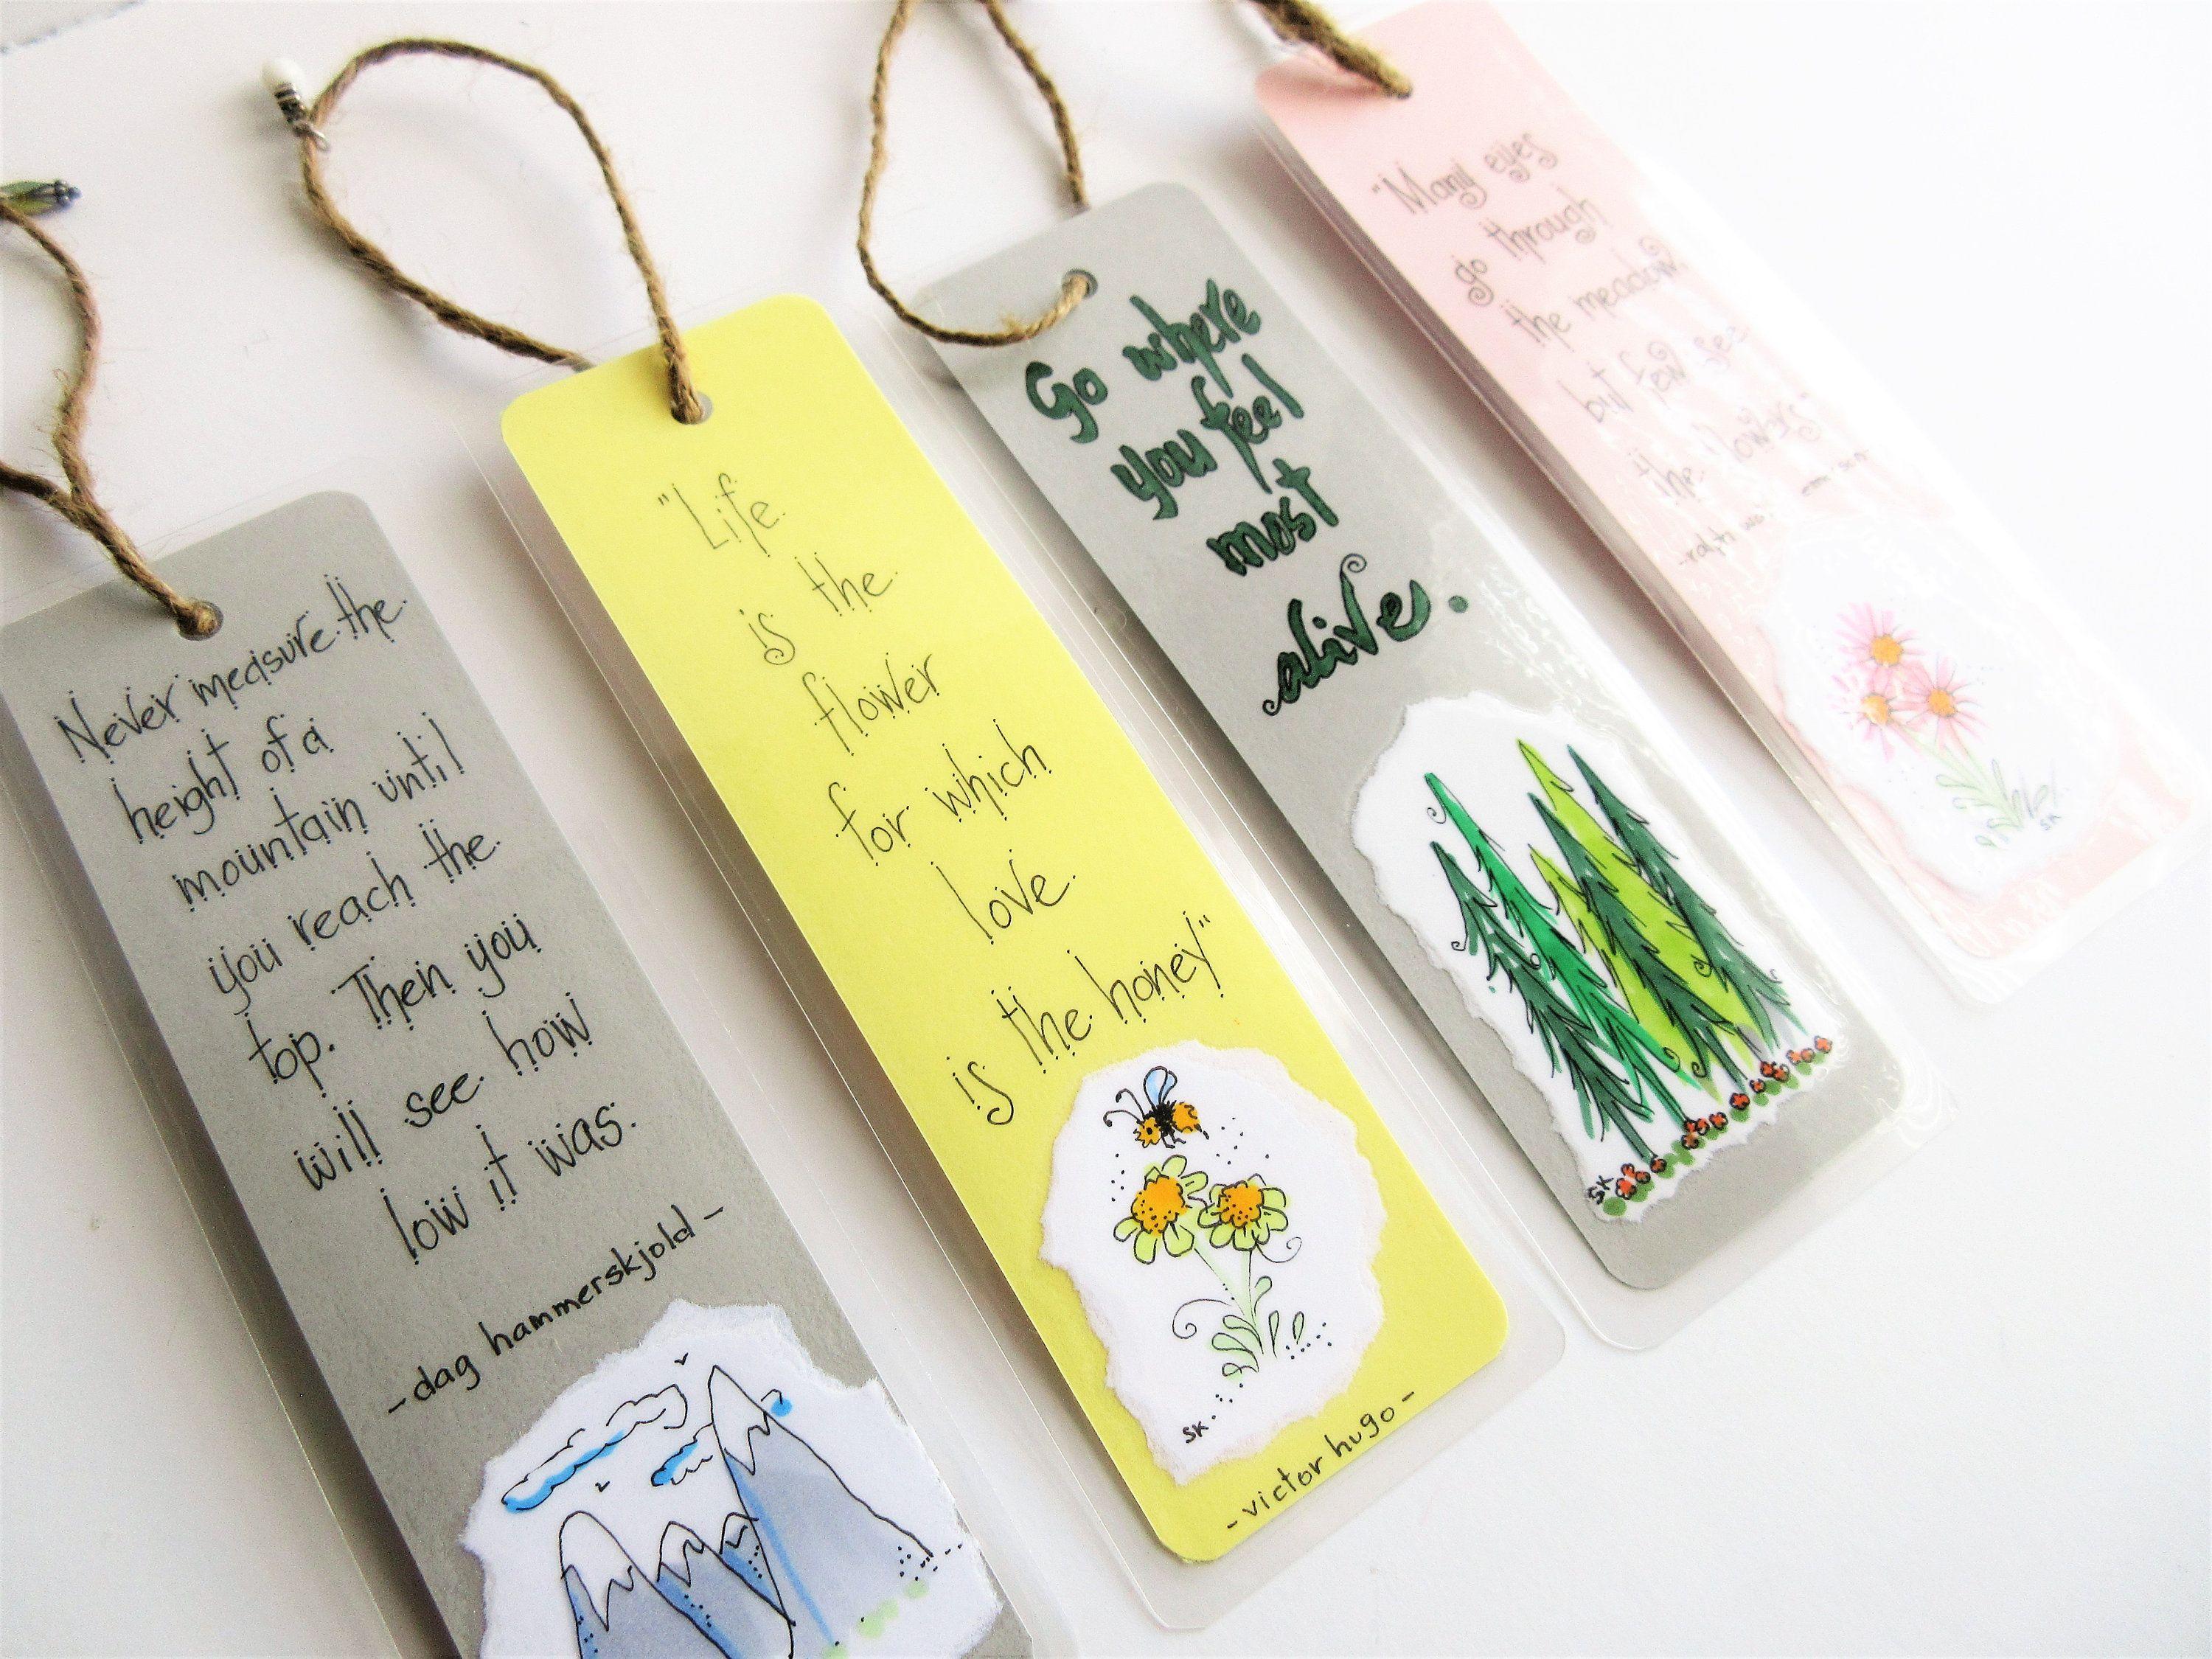 Handmade Bookmarks Book Lover Gifts Gifts For Friends Etsy Bookmarks Handmade Handmade Gifts For Friends Book Lovers Gifts